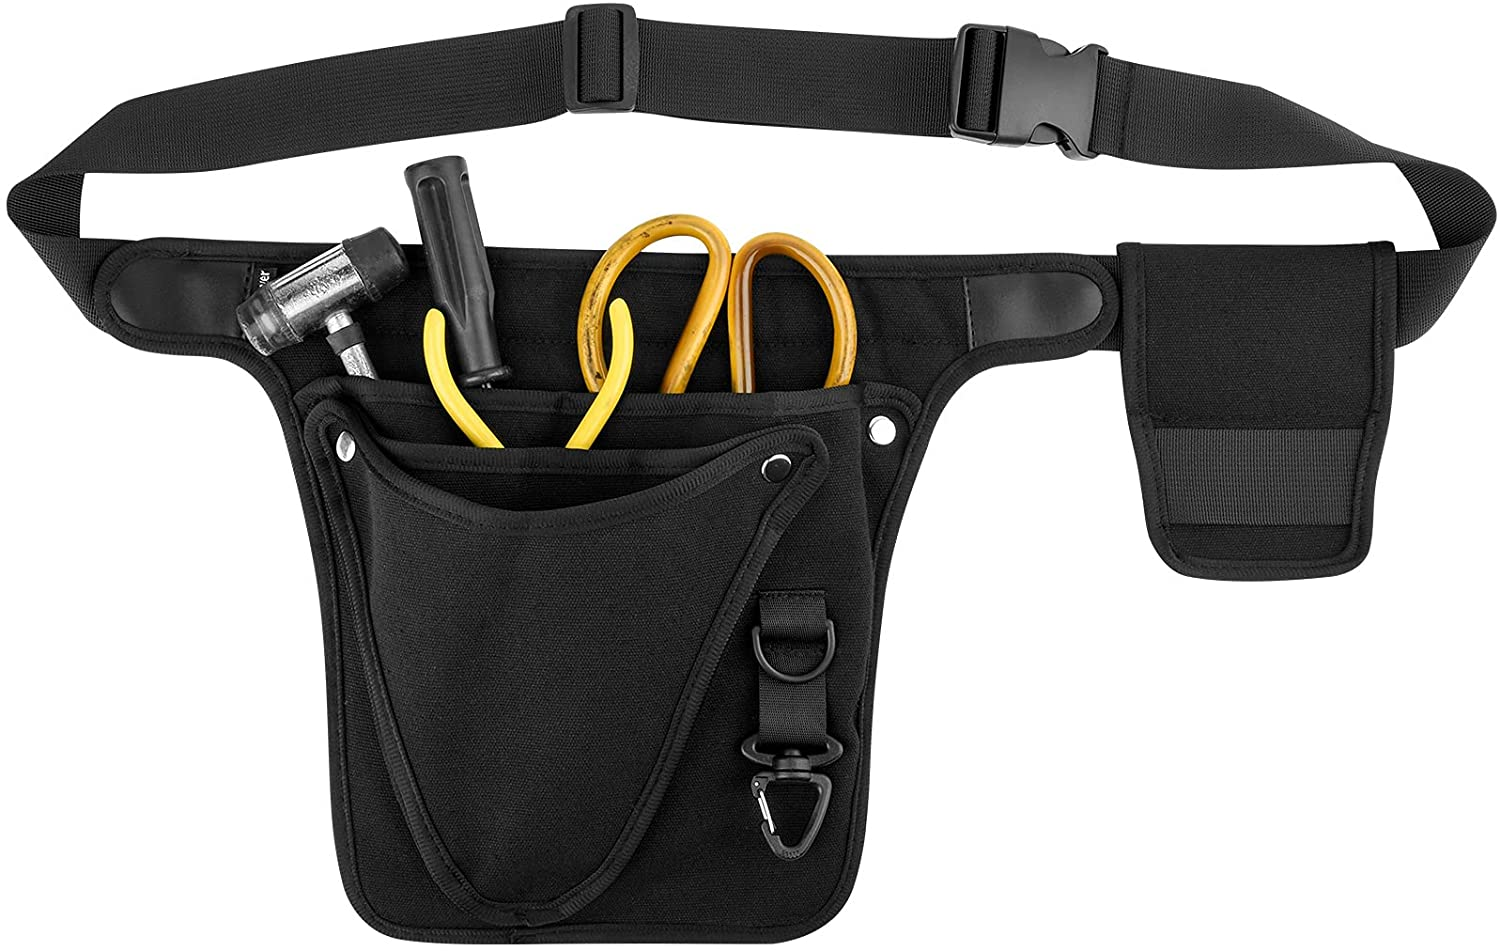 Garden Tool Belt for Women Men- SEAL limited product Womens Safety and trust Adjustable T